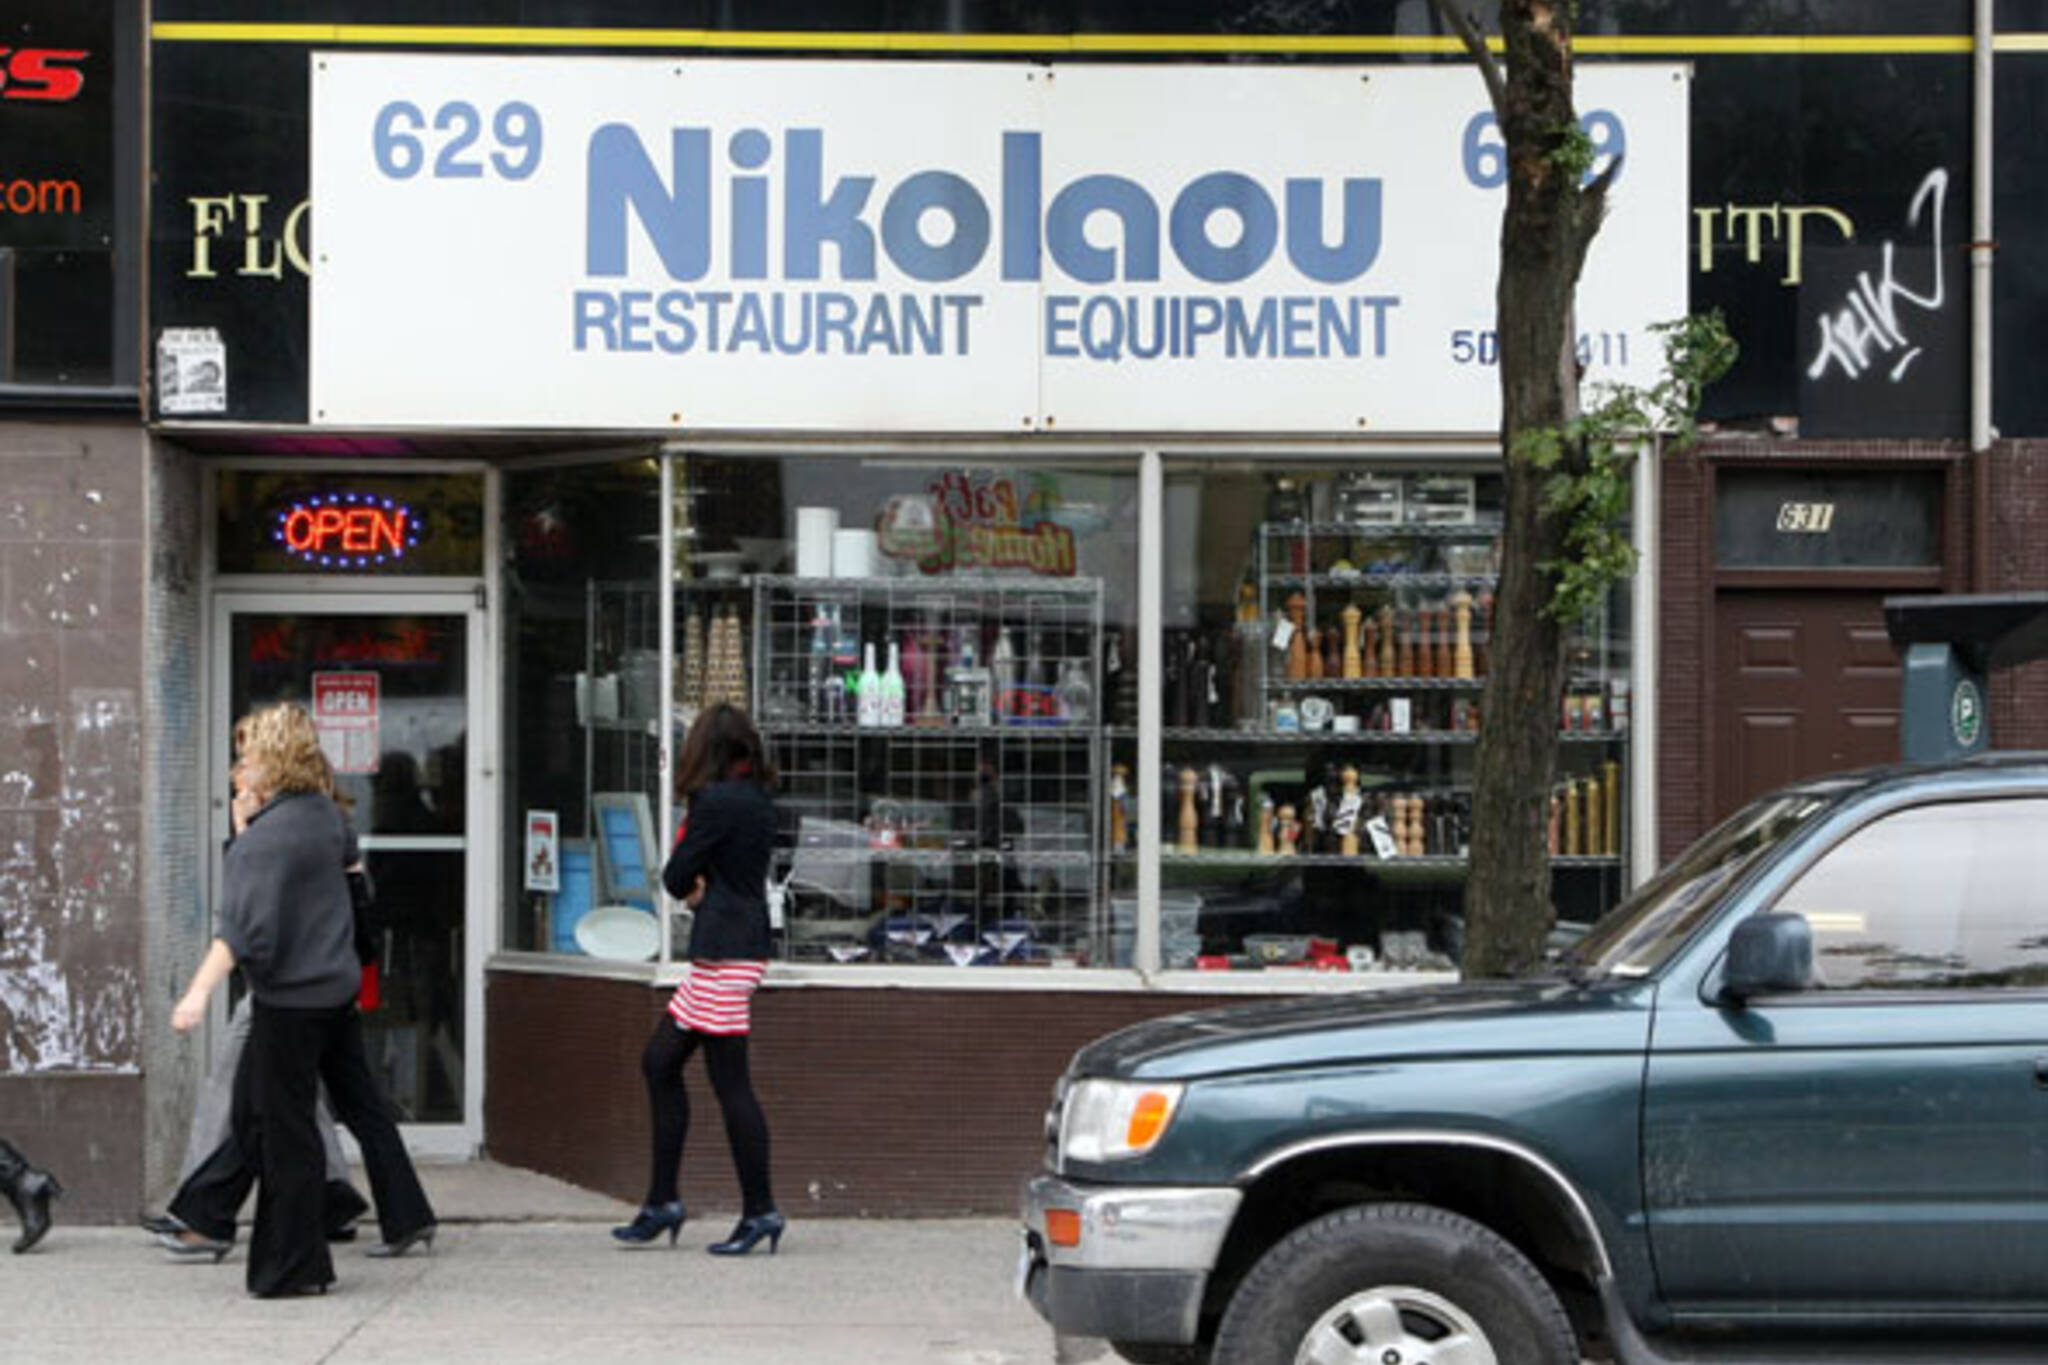 Nikolaou Restaurant Equipment